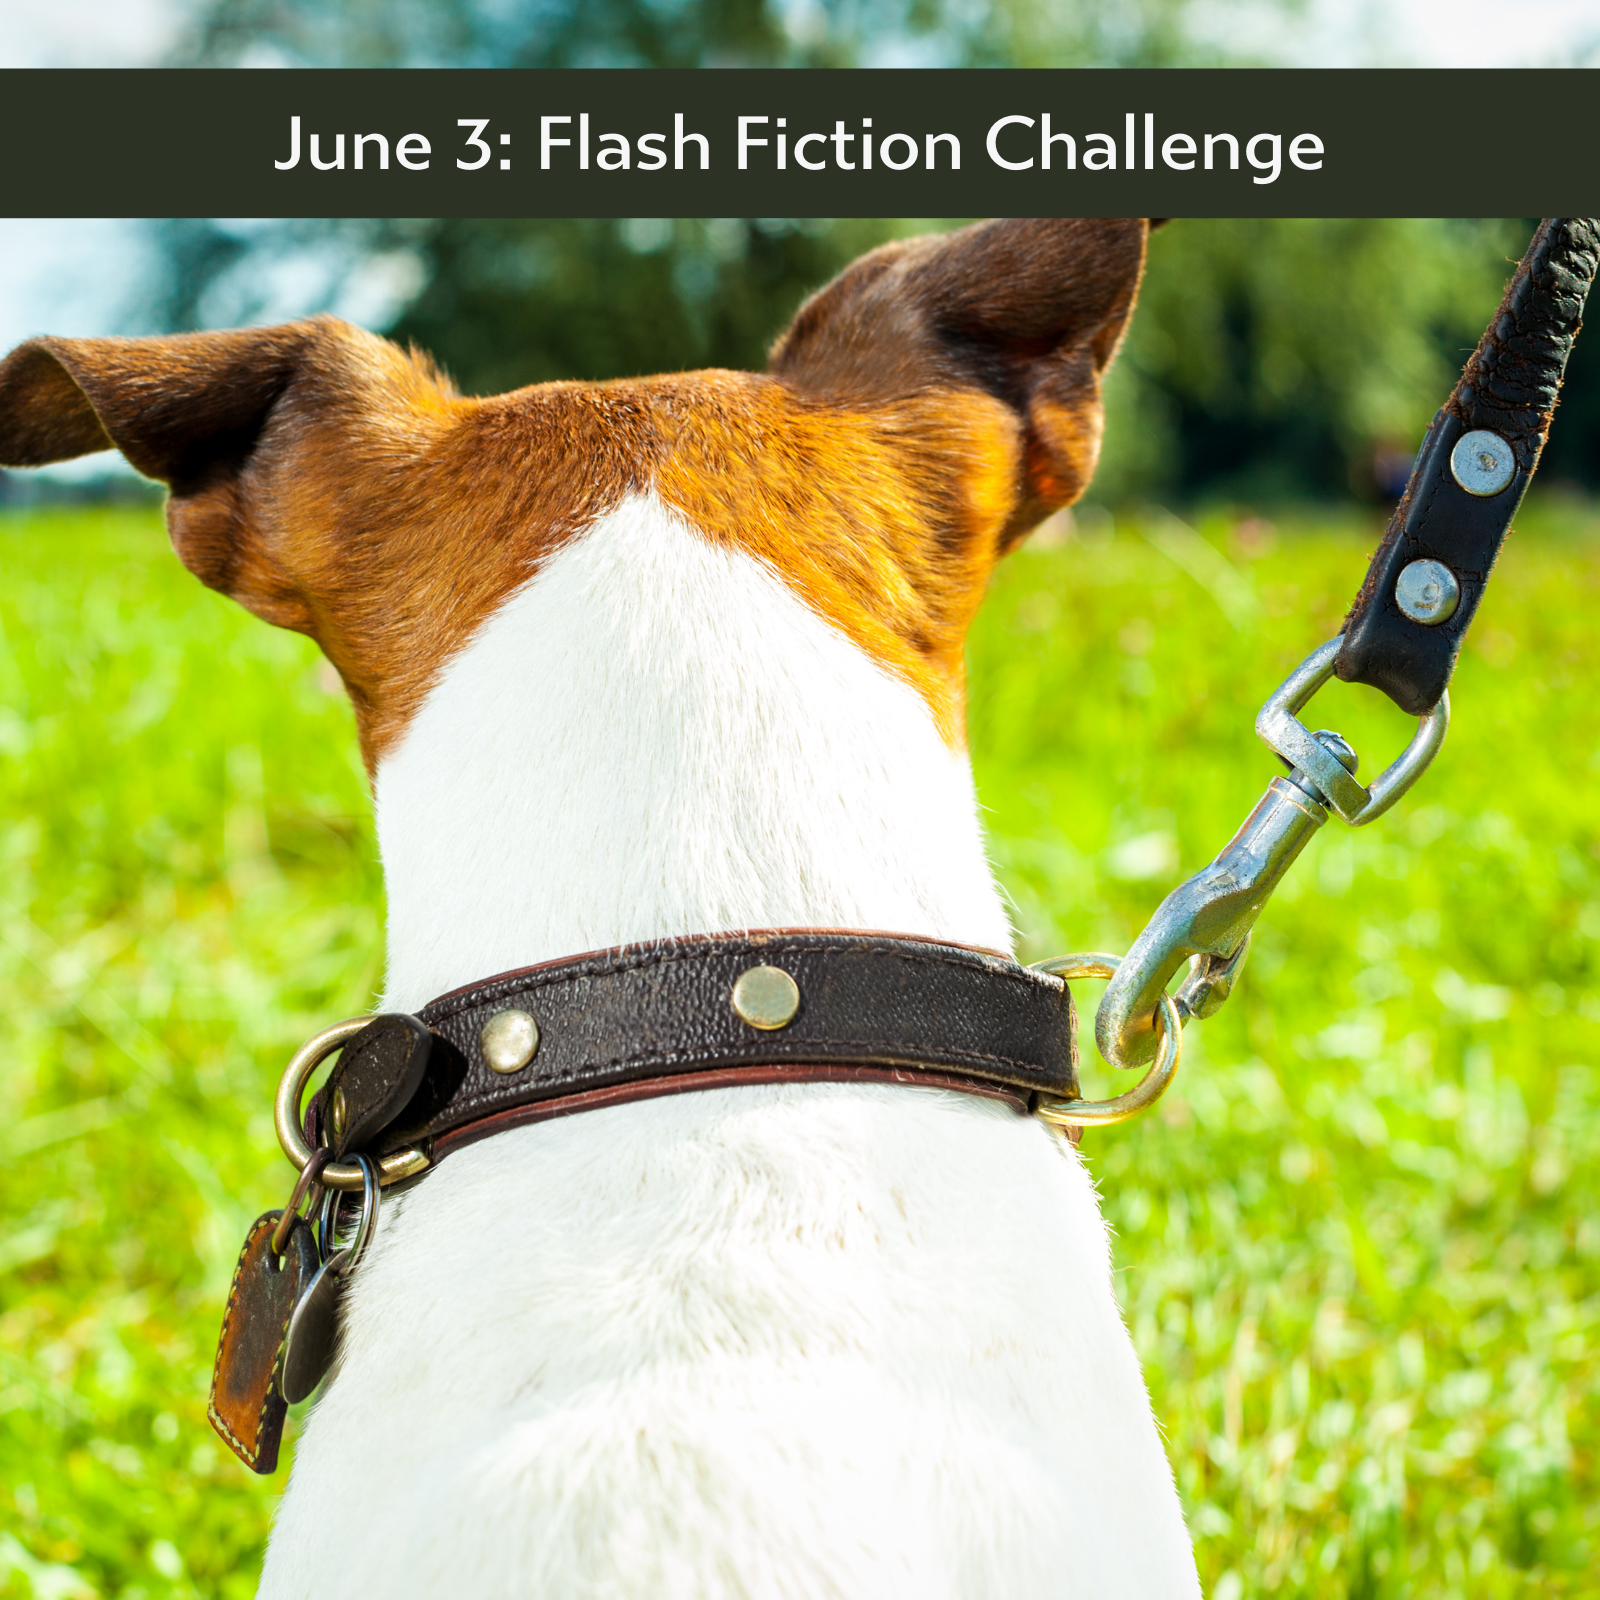 Leashed flash fiction prompt